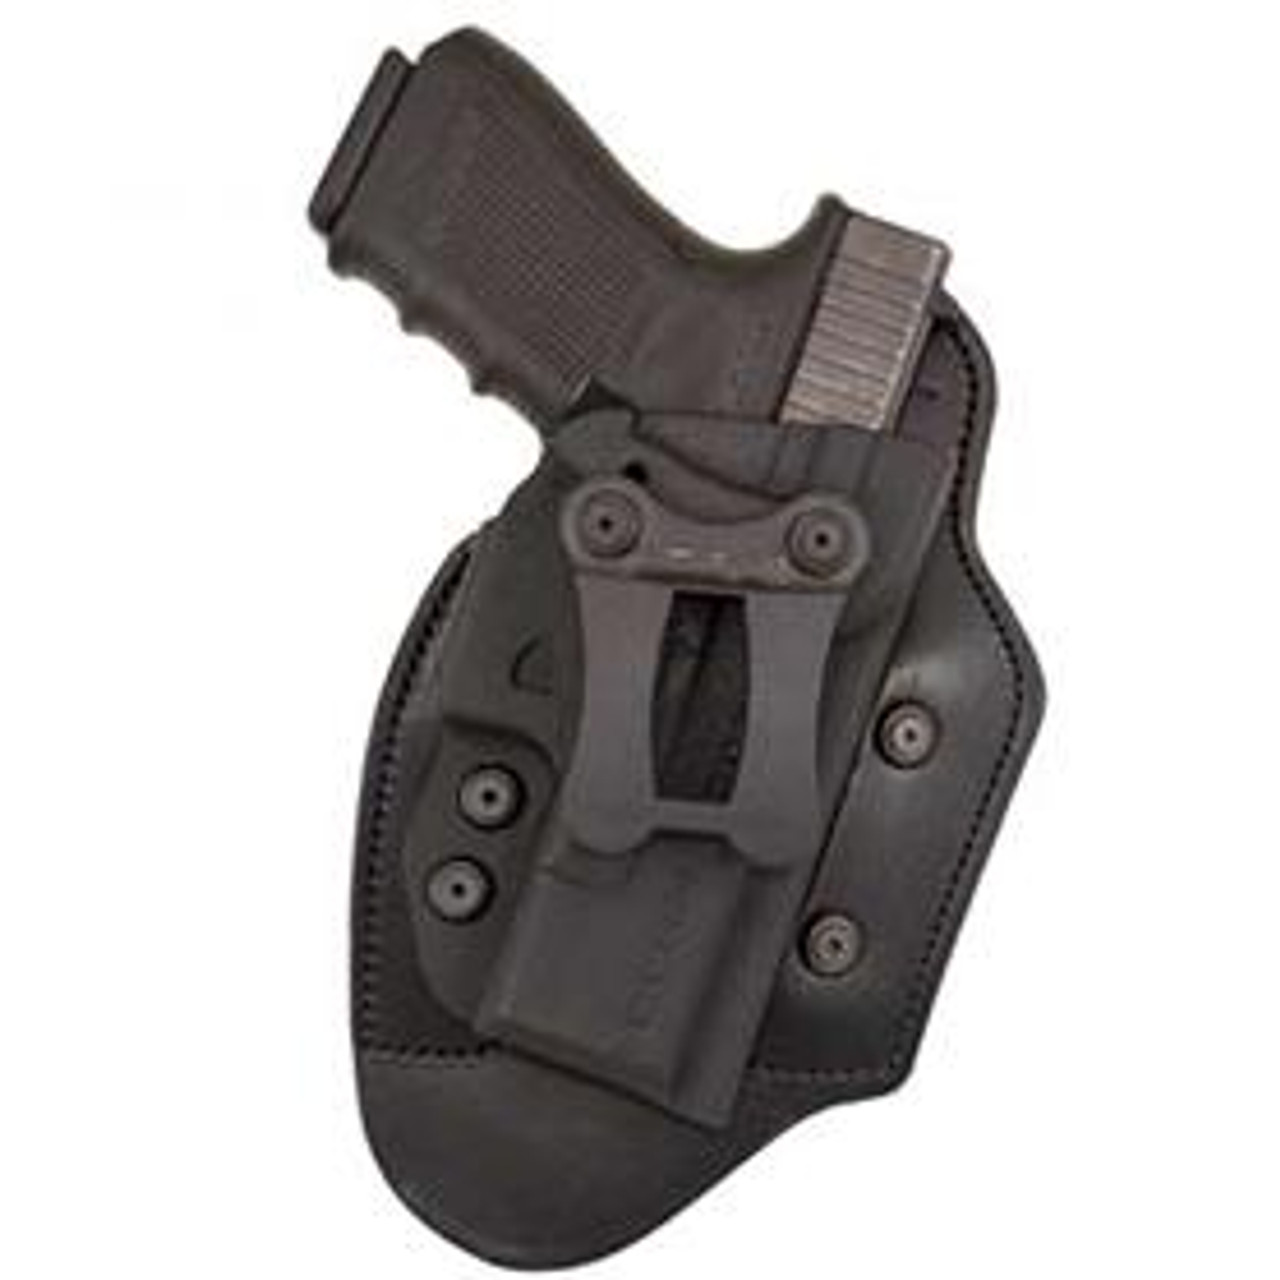 IWB//OWB Kydex//Leather Hybrid Holster with adjustable retention for H/&K